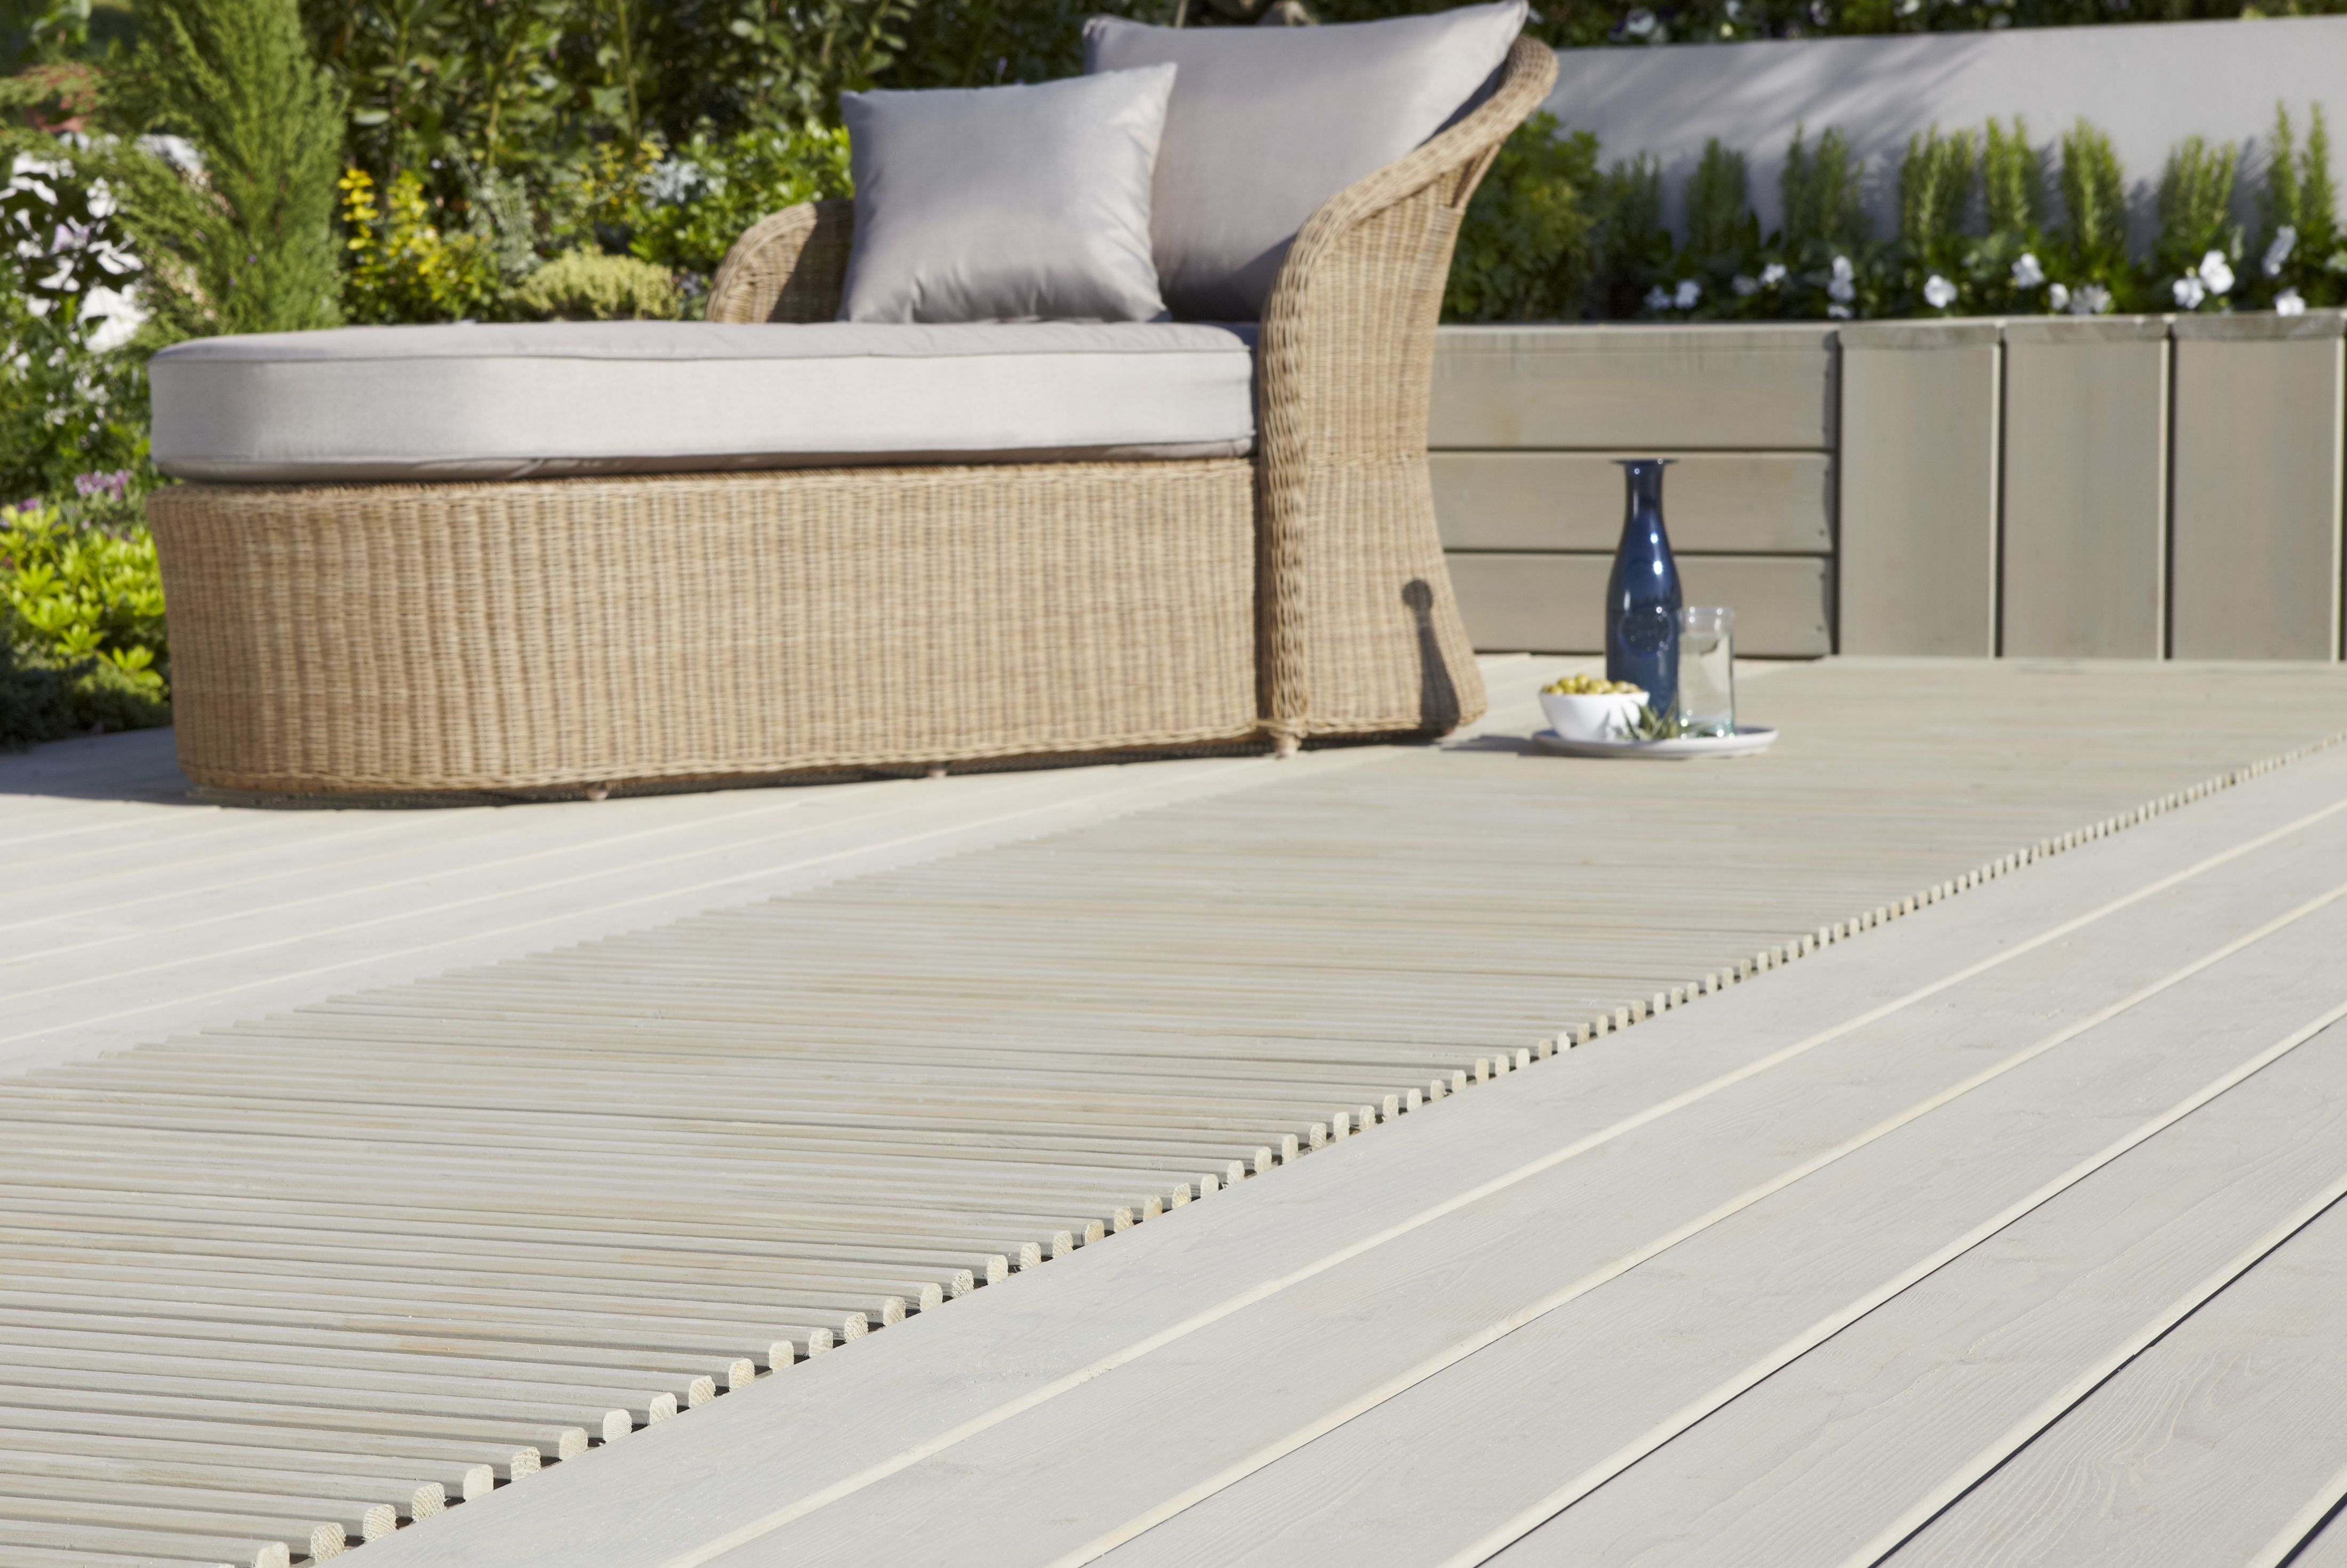 Decking buying guide help ideas diy at b q for Garden decking and slabs